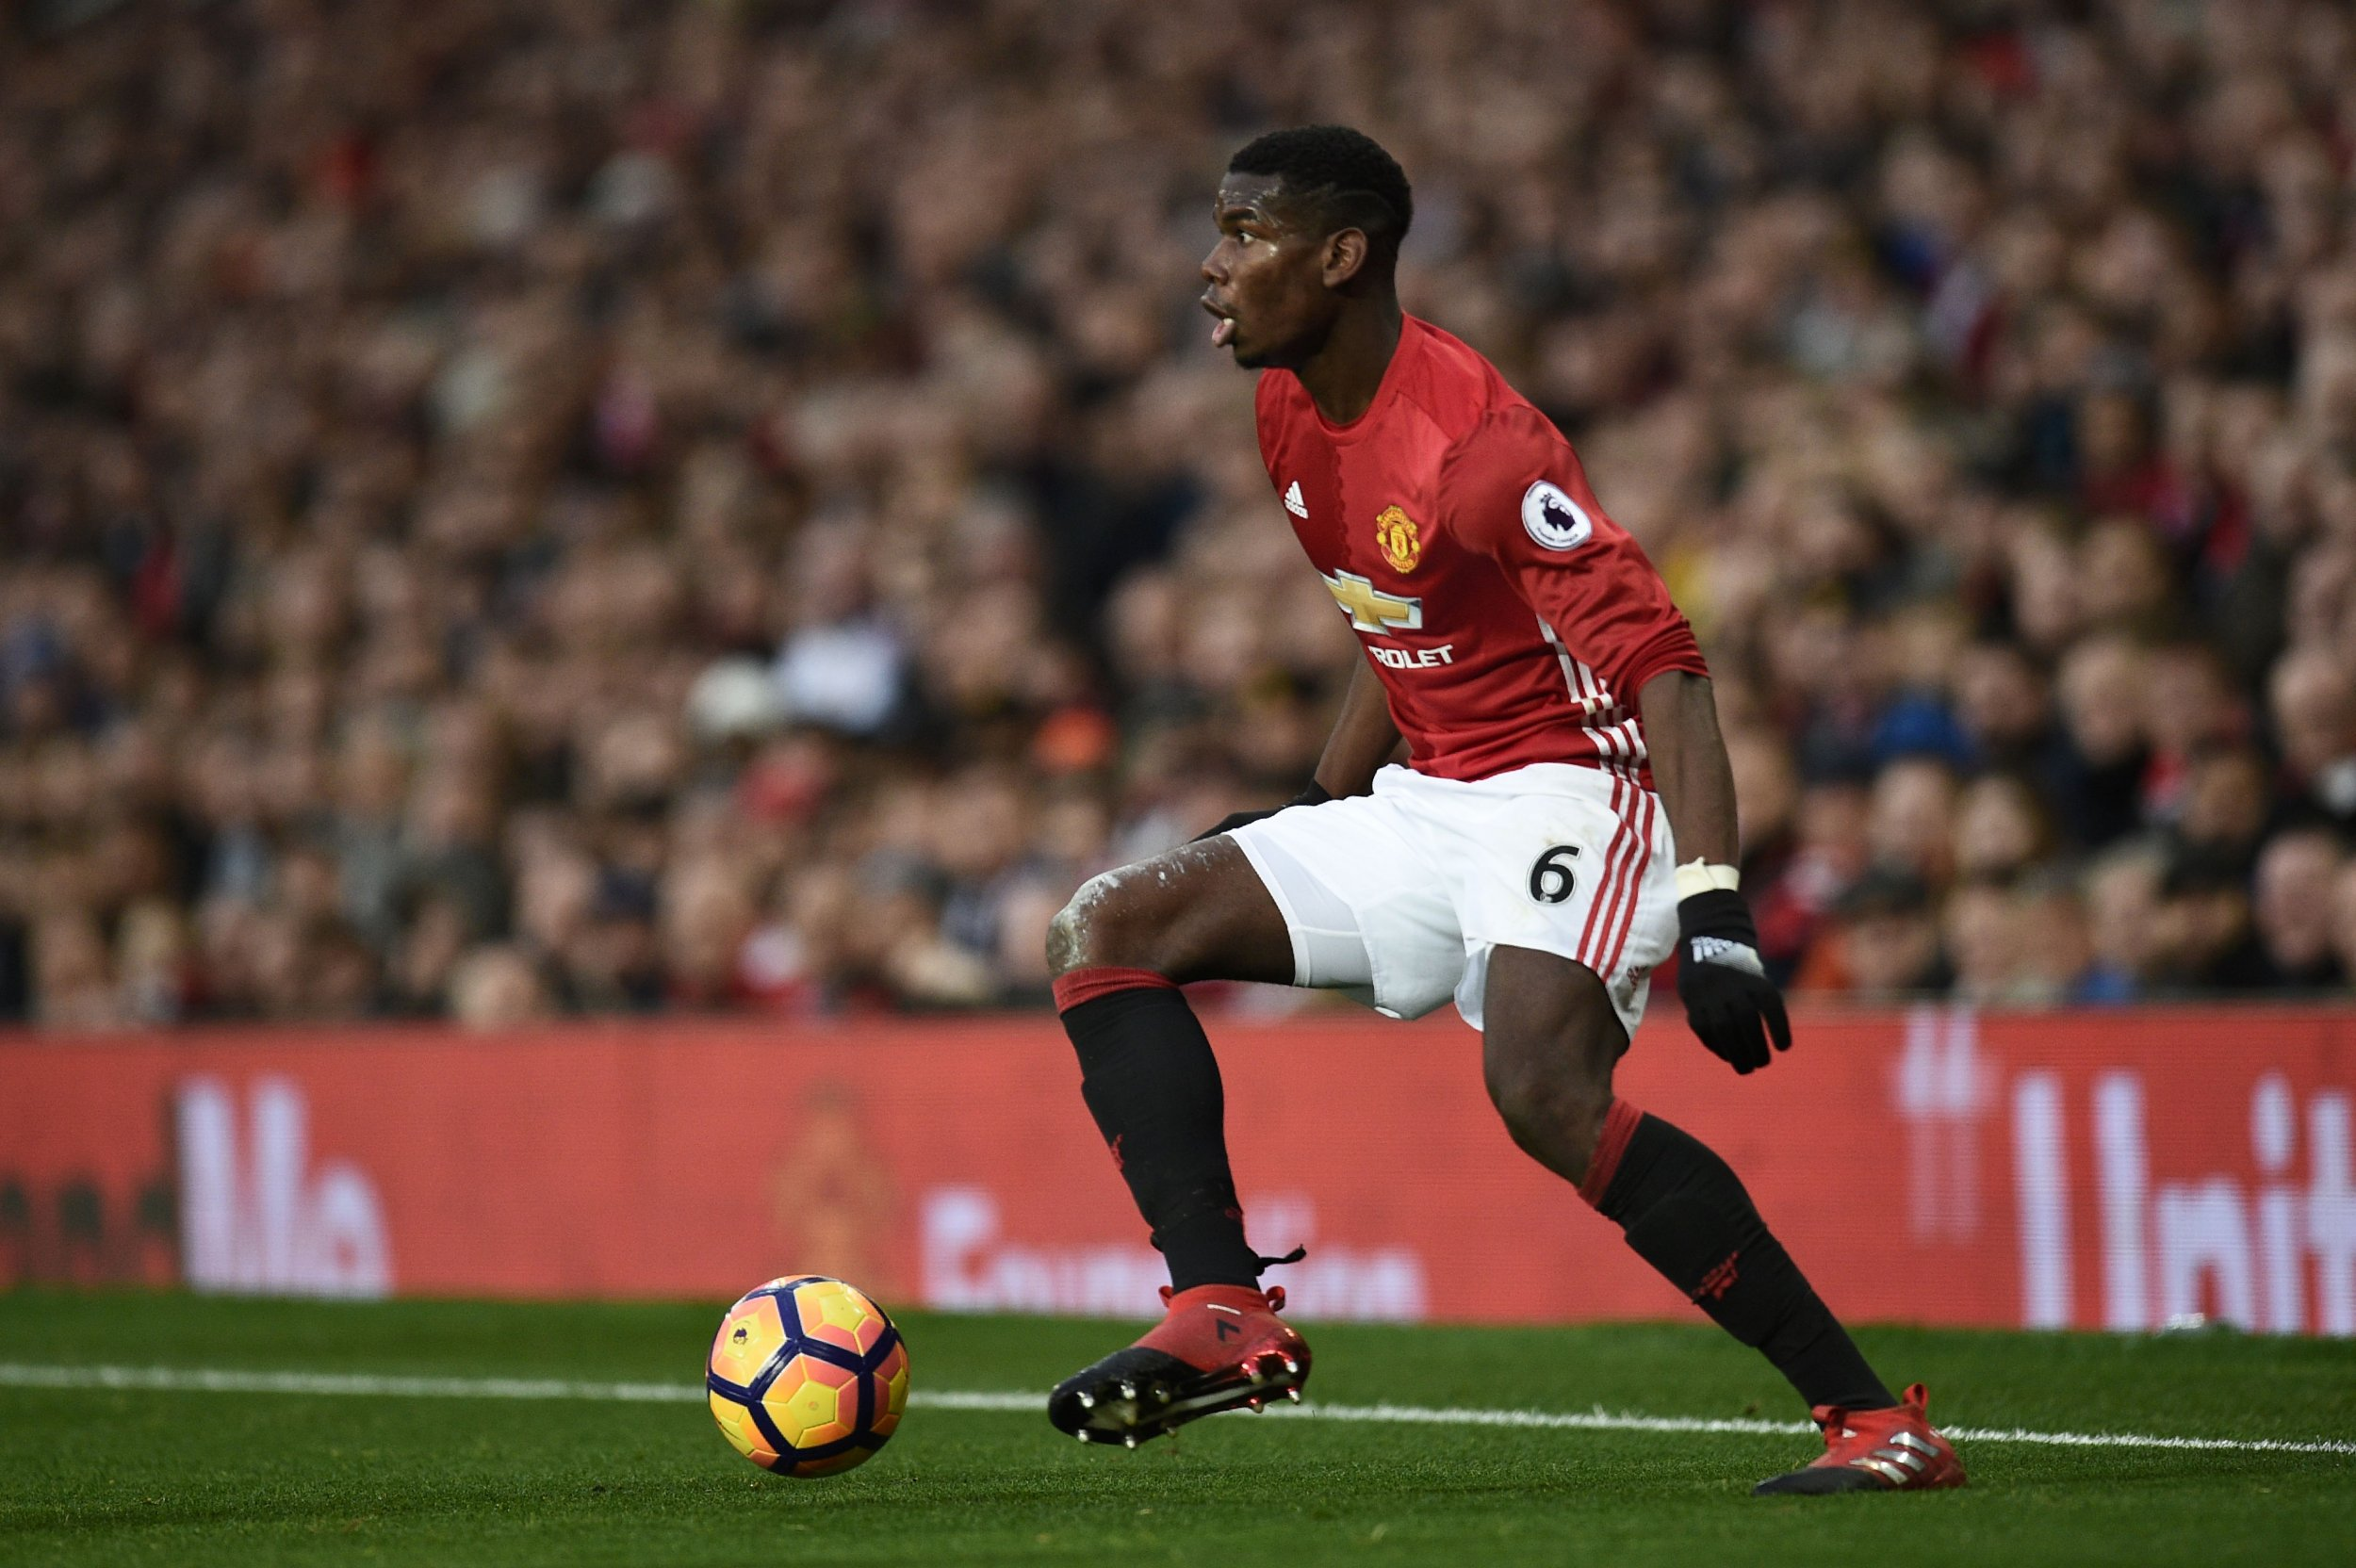 Paul Pogba: Paul Pogba: Manchester United Star's World Record Transfer